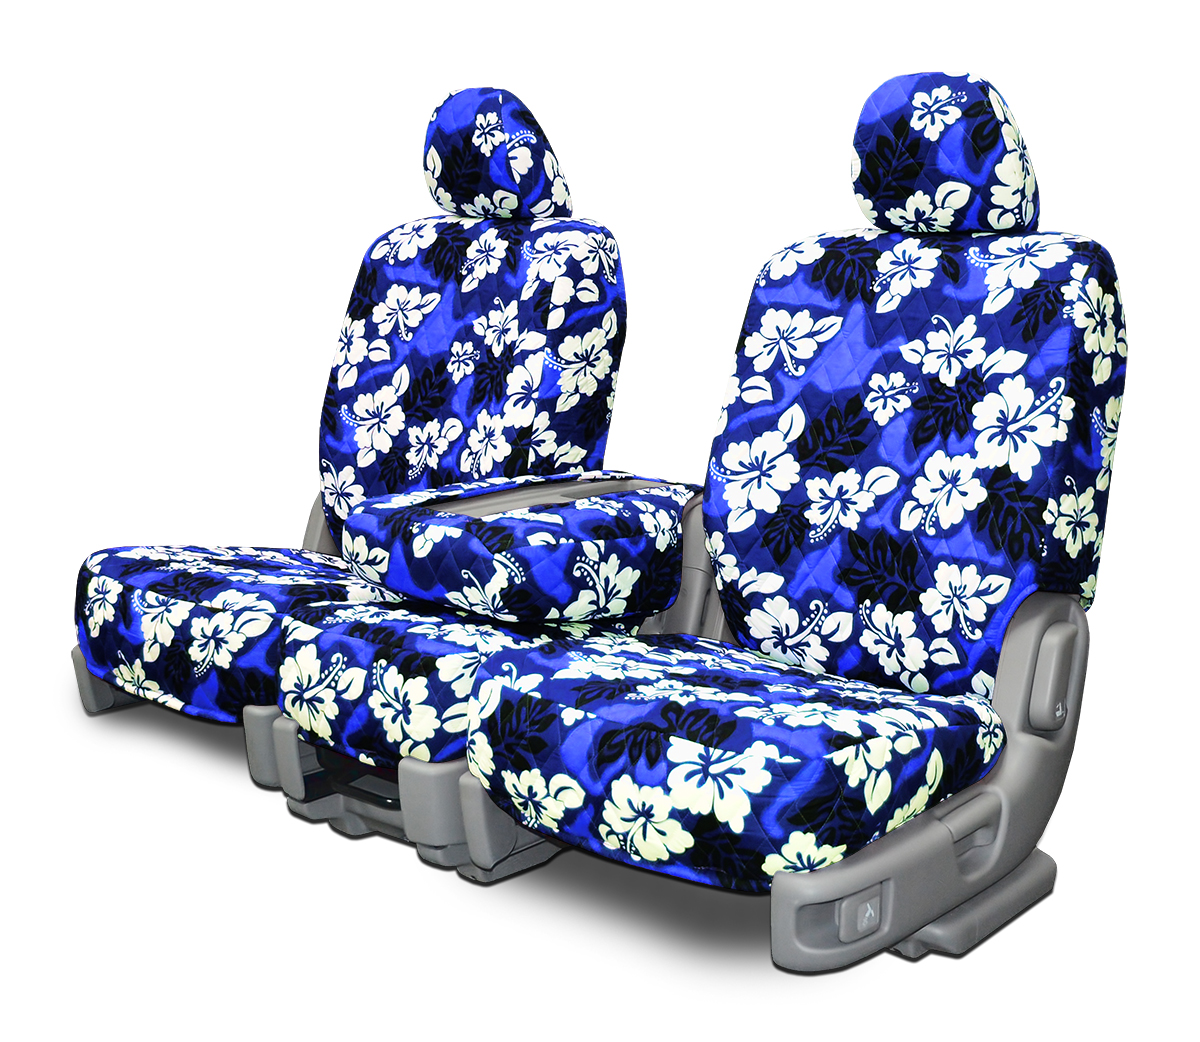 Where Can I Find Seat Covers Hawaiian Seat Covers Seat Covers Unlimited